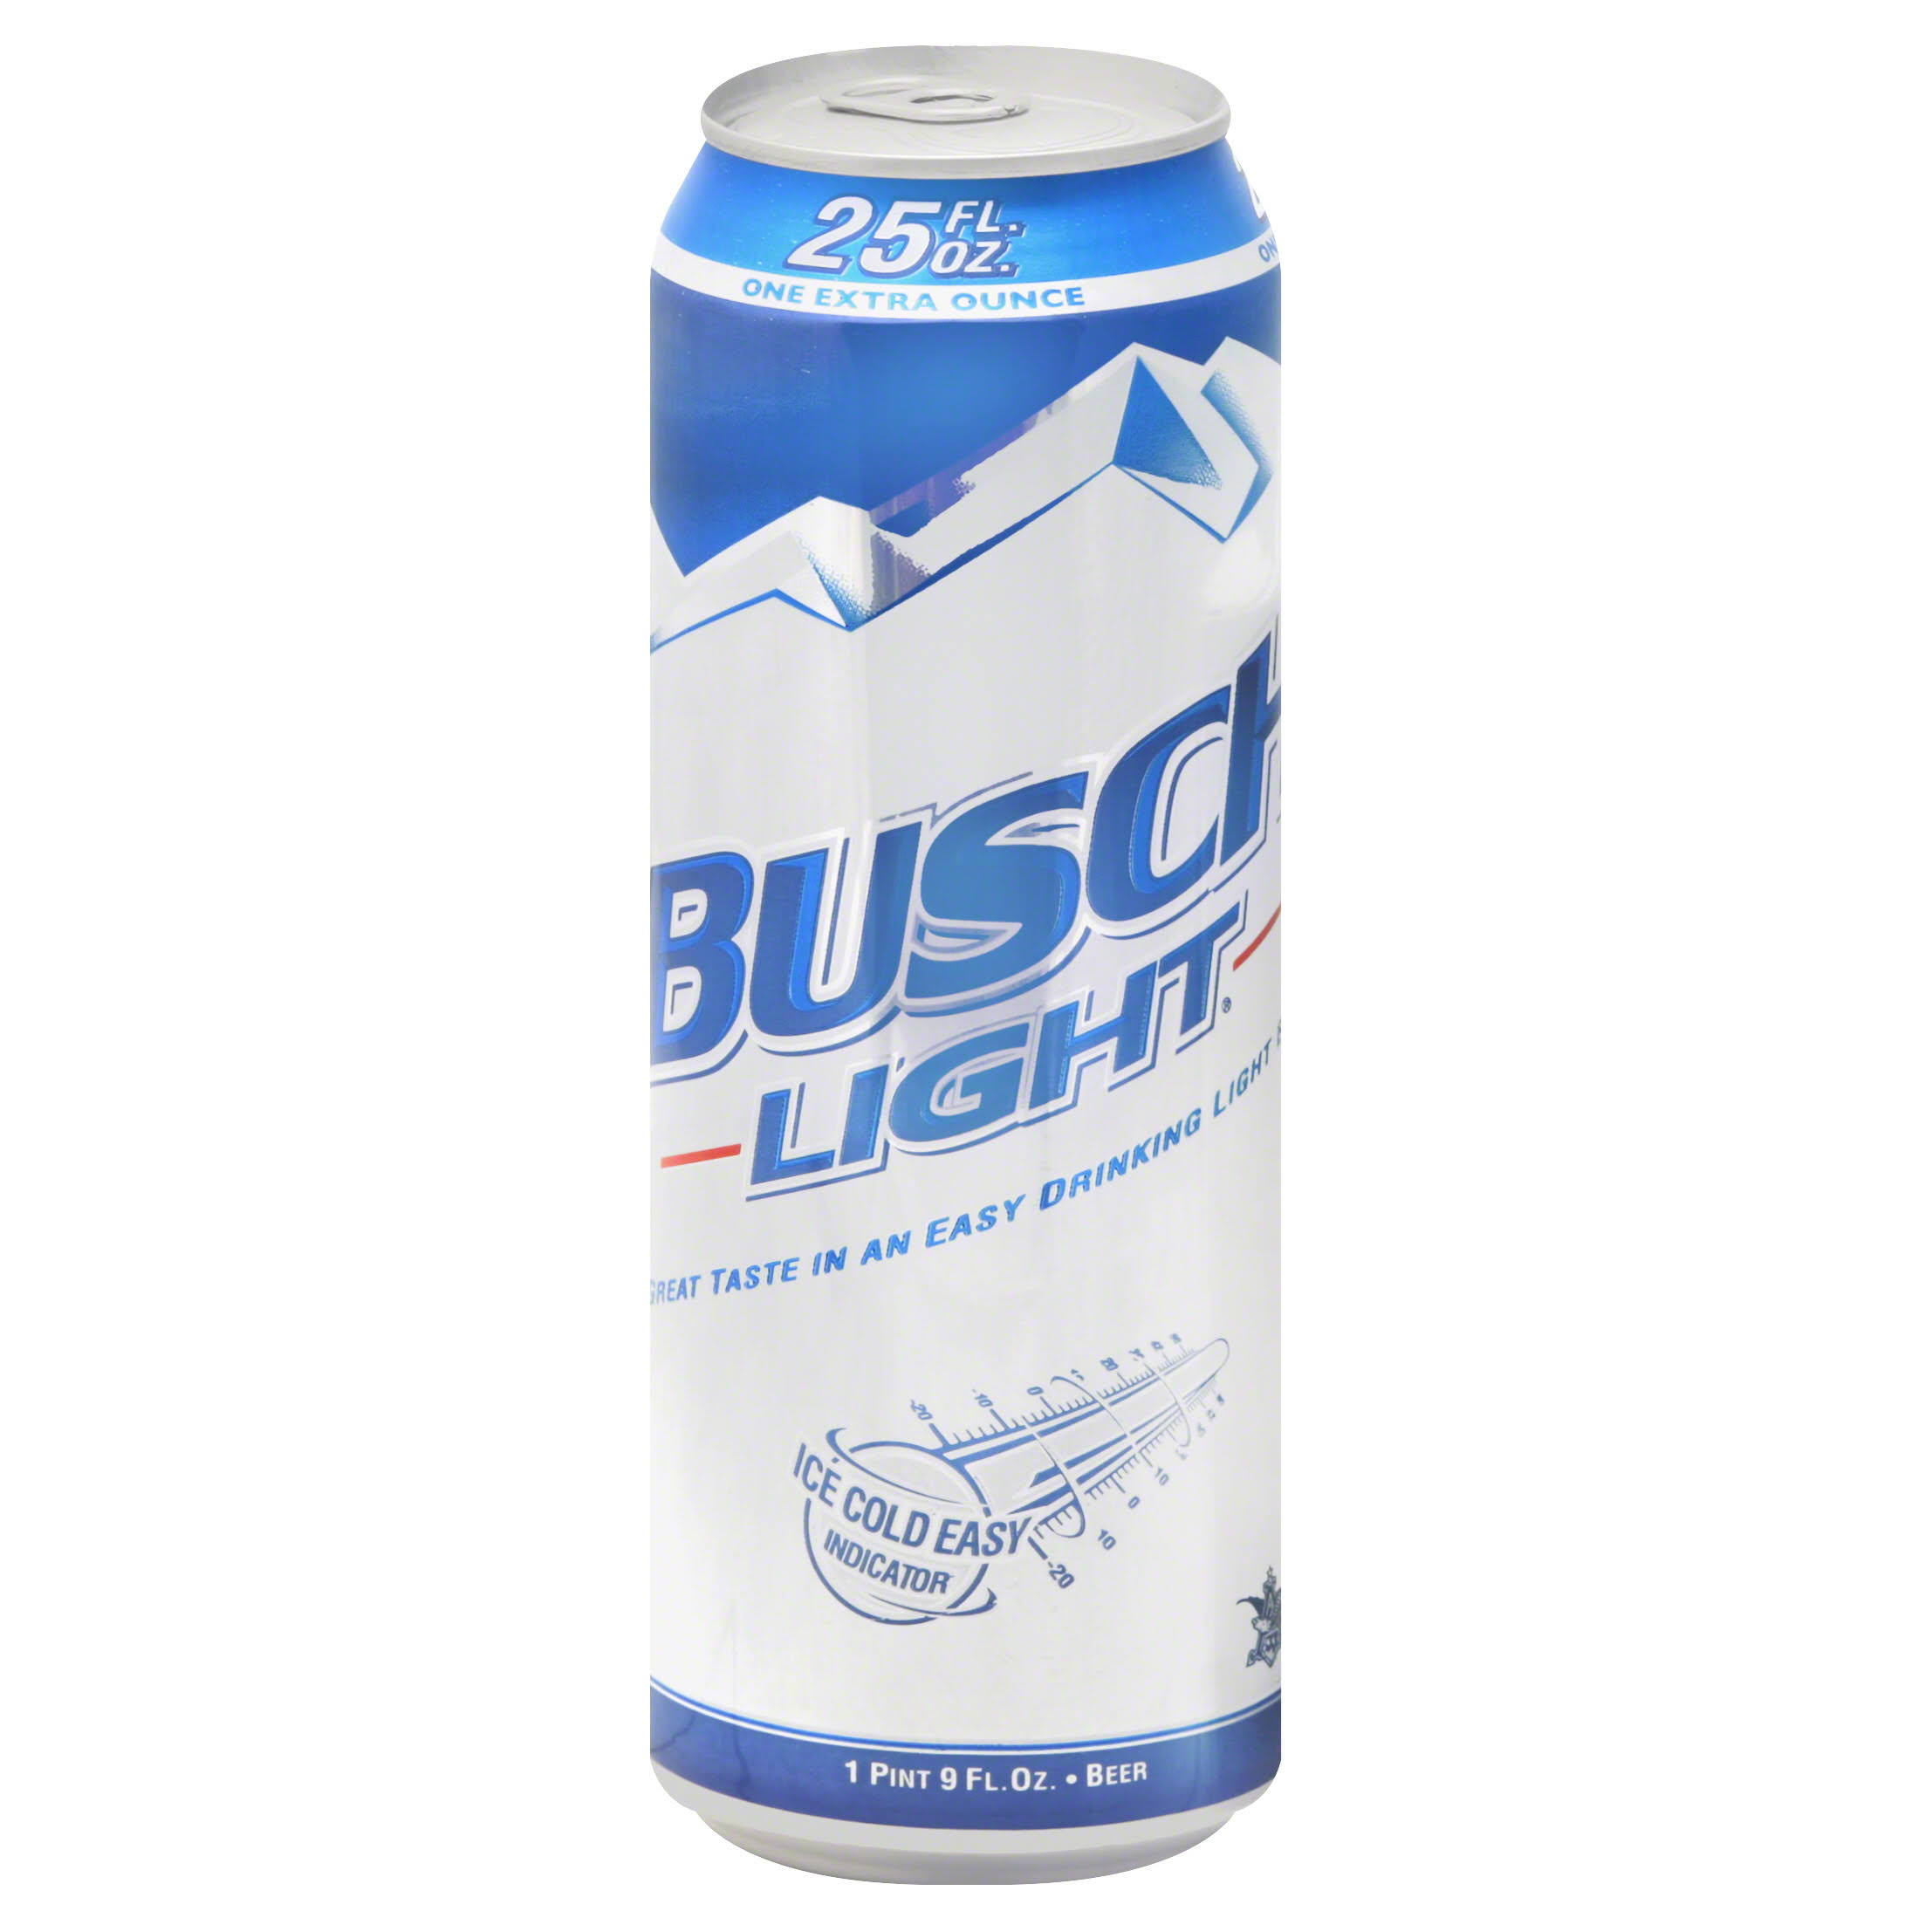 Labatt Busch Ice Busch Light Beer - 25oz